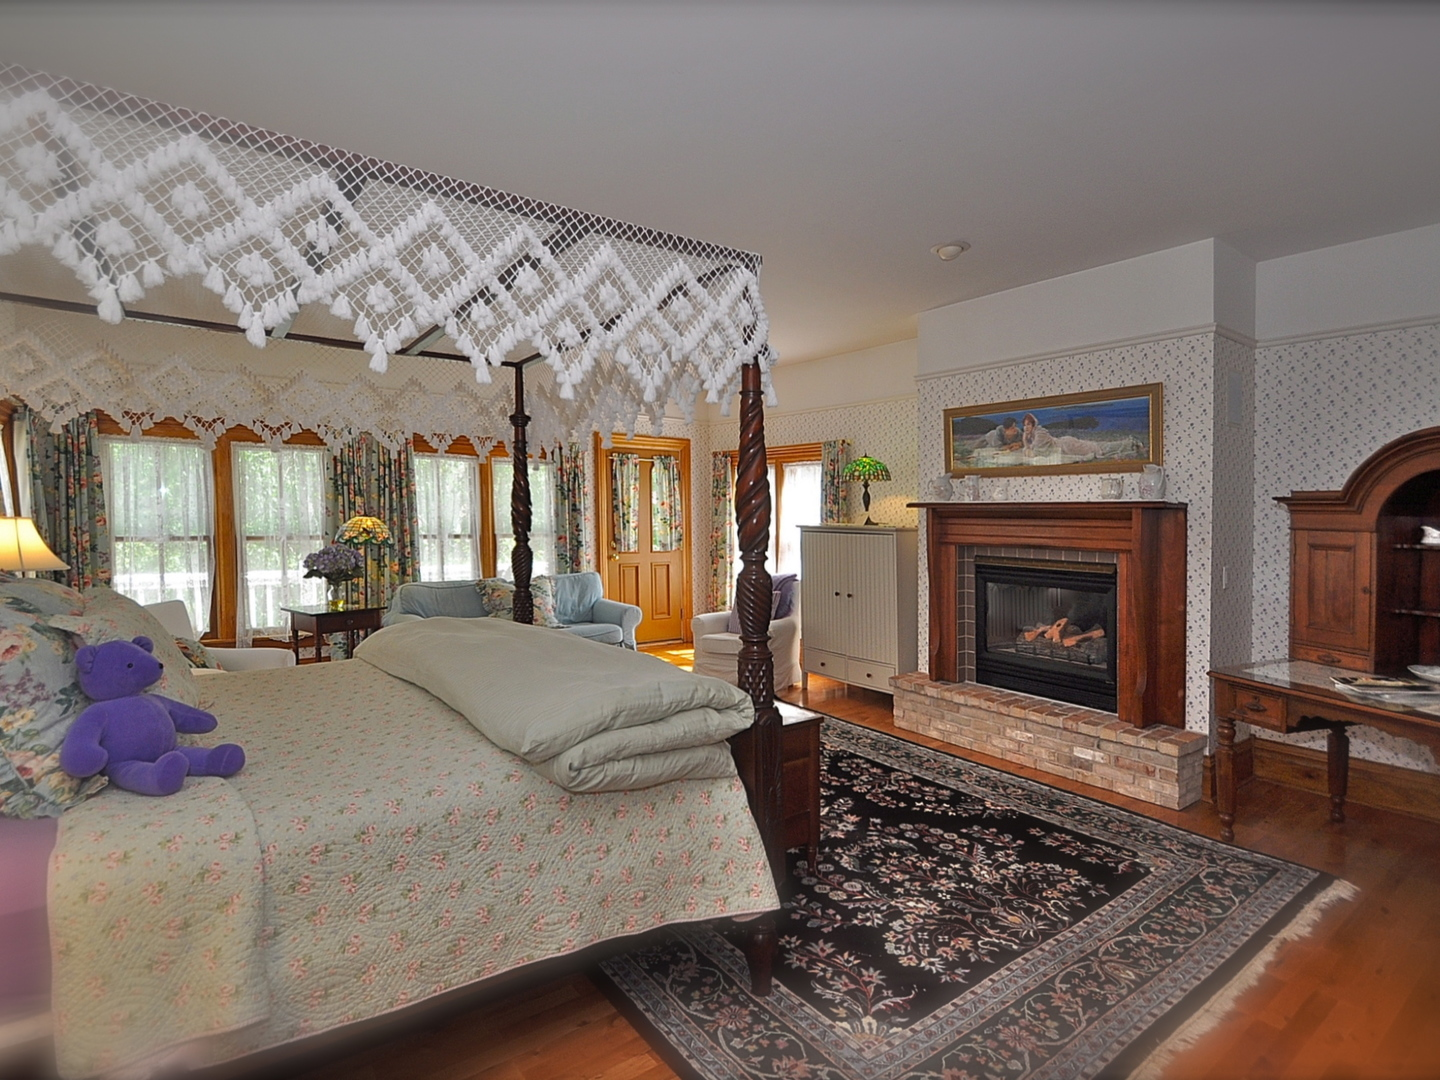 A living room with a bed and a fireplace at White Lace Inn.